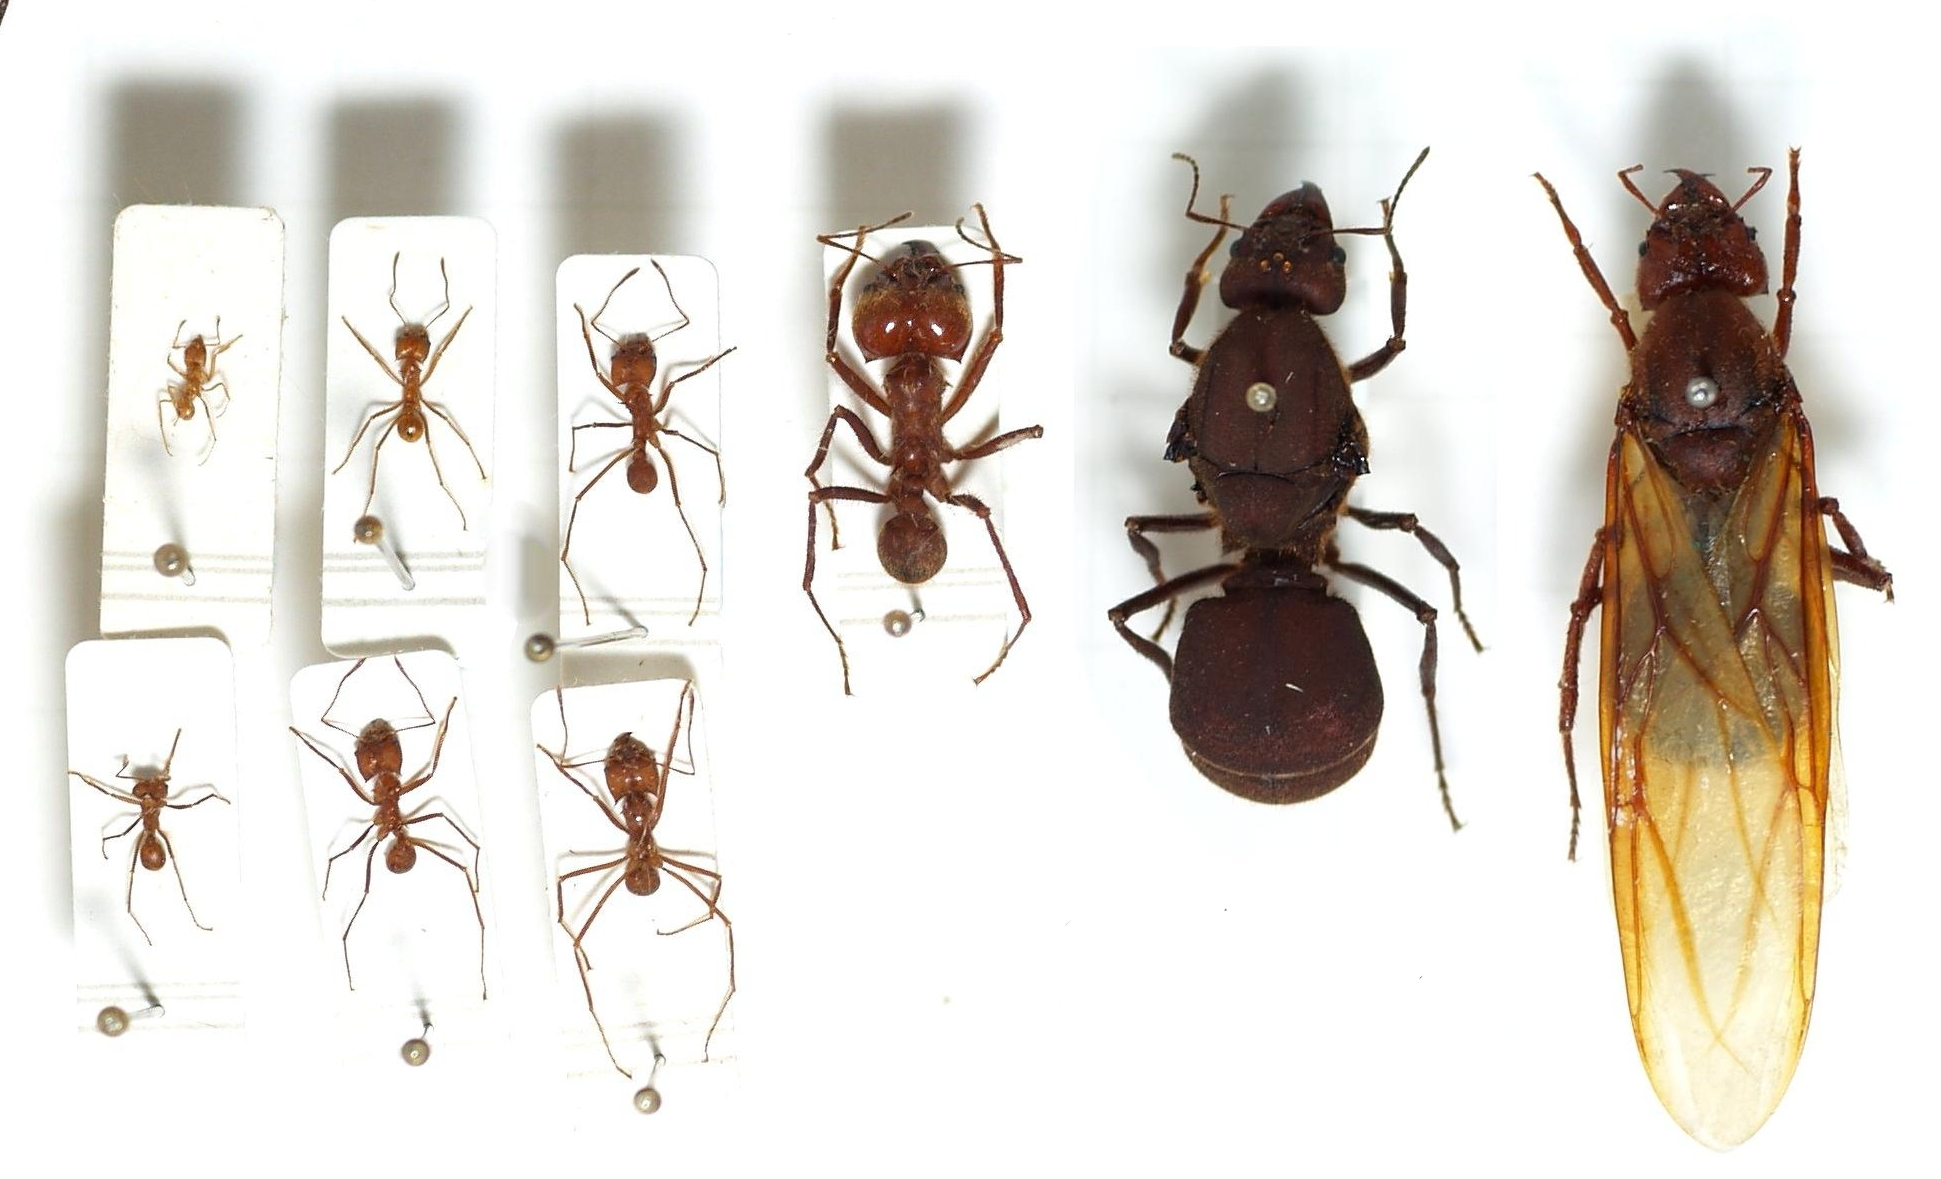 Left most 7 are workers of various castes, right 2 are queens (rightmost: winged form).